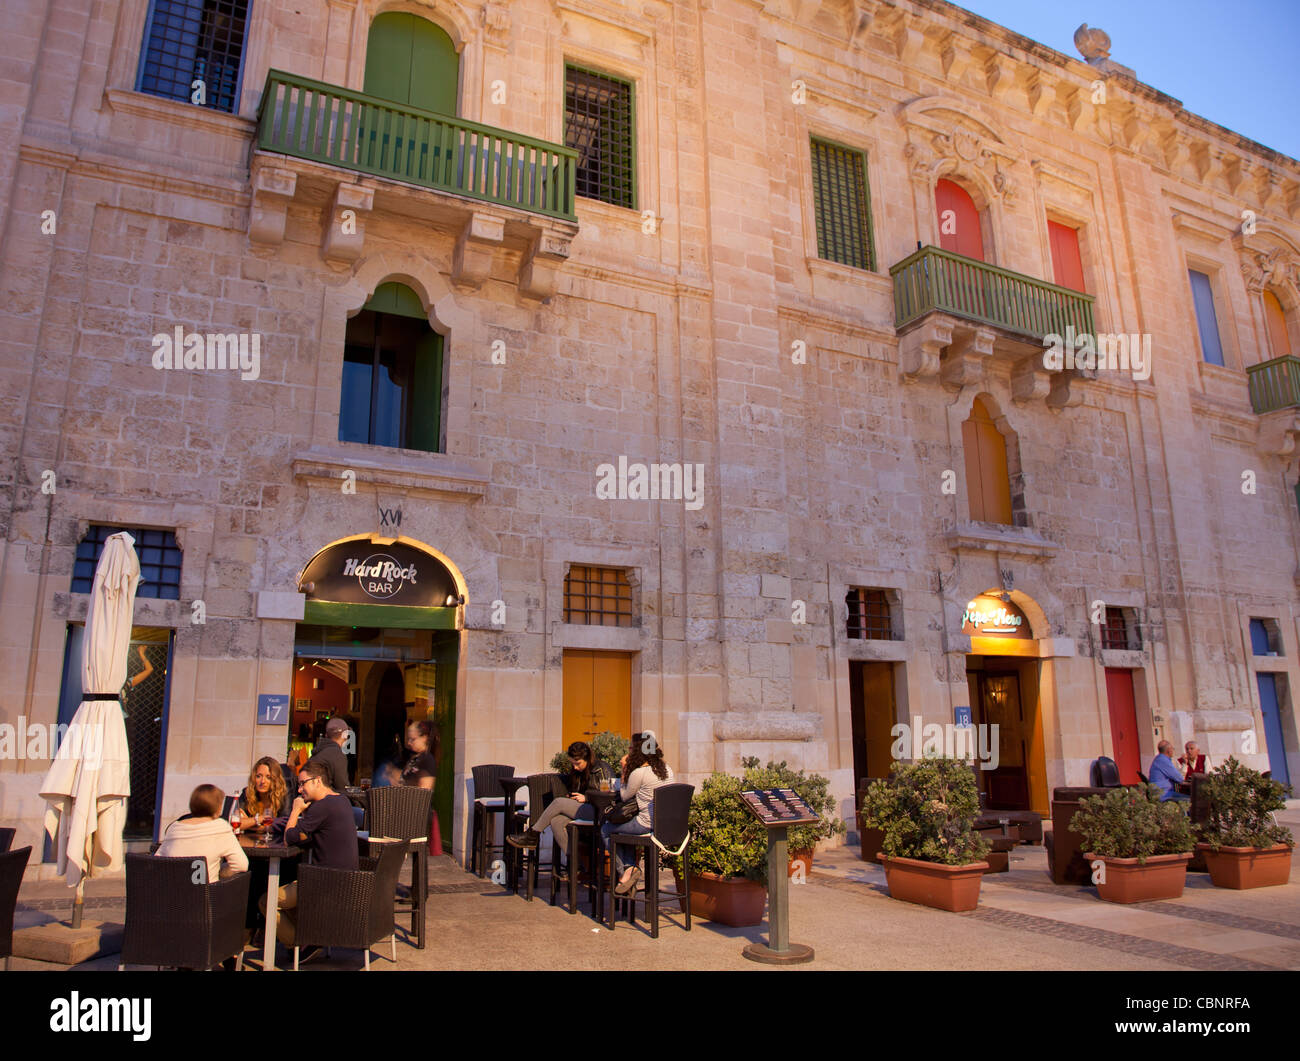 Restored wharf buildings in the Grand Harbour in Valletta that now serve as shops, cafes, clubs, and restaurants. - Stock Image